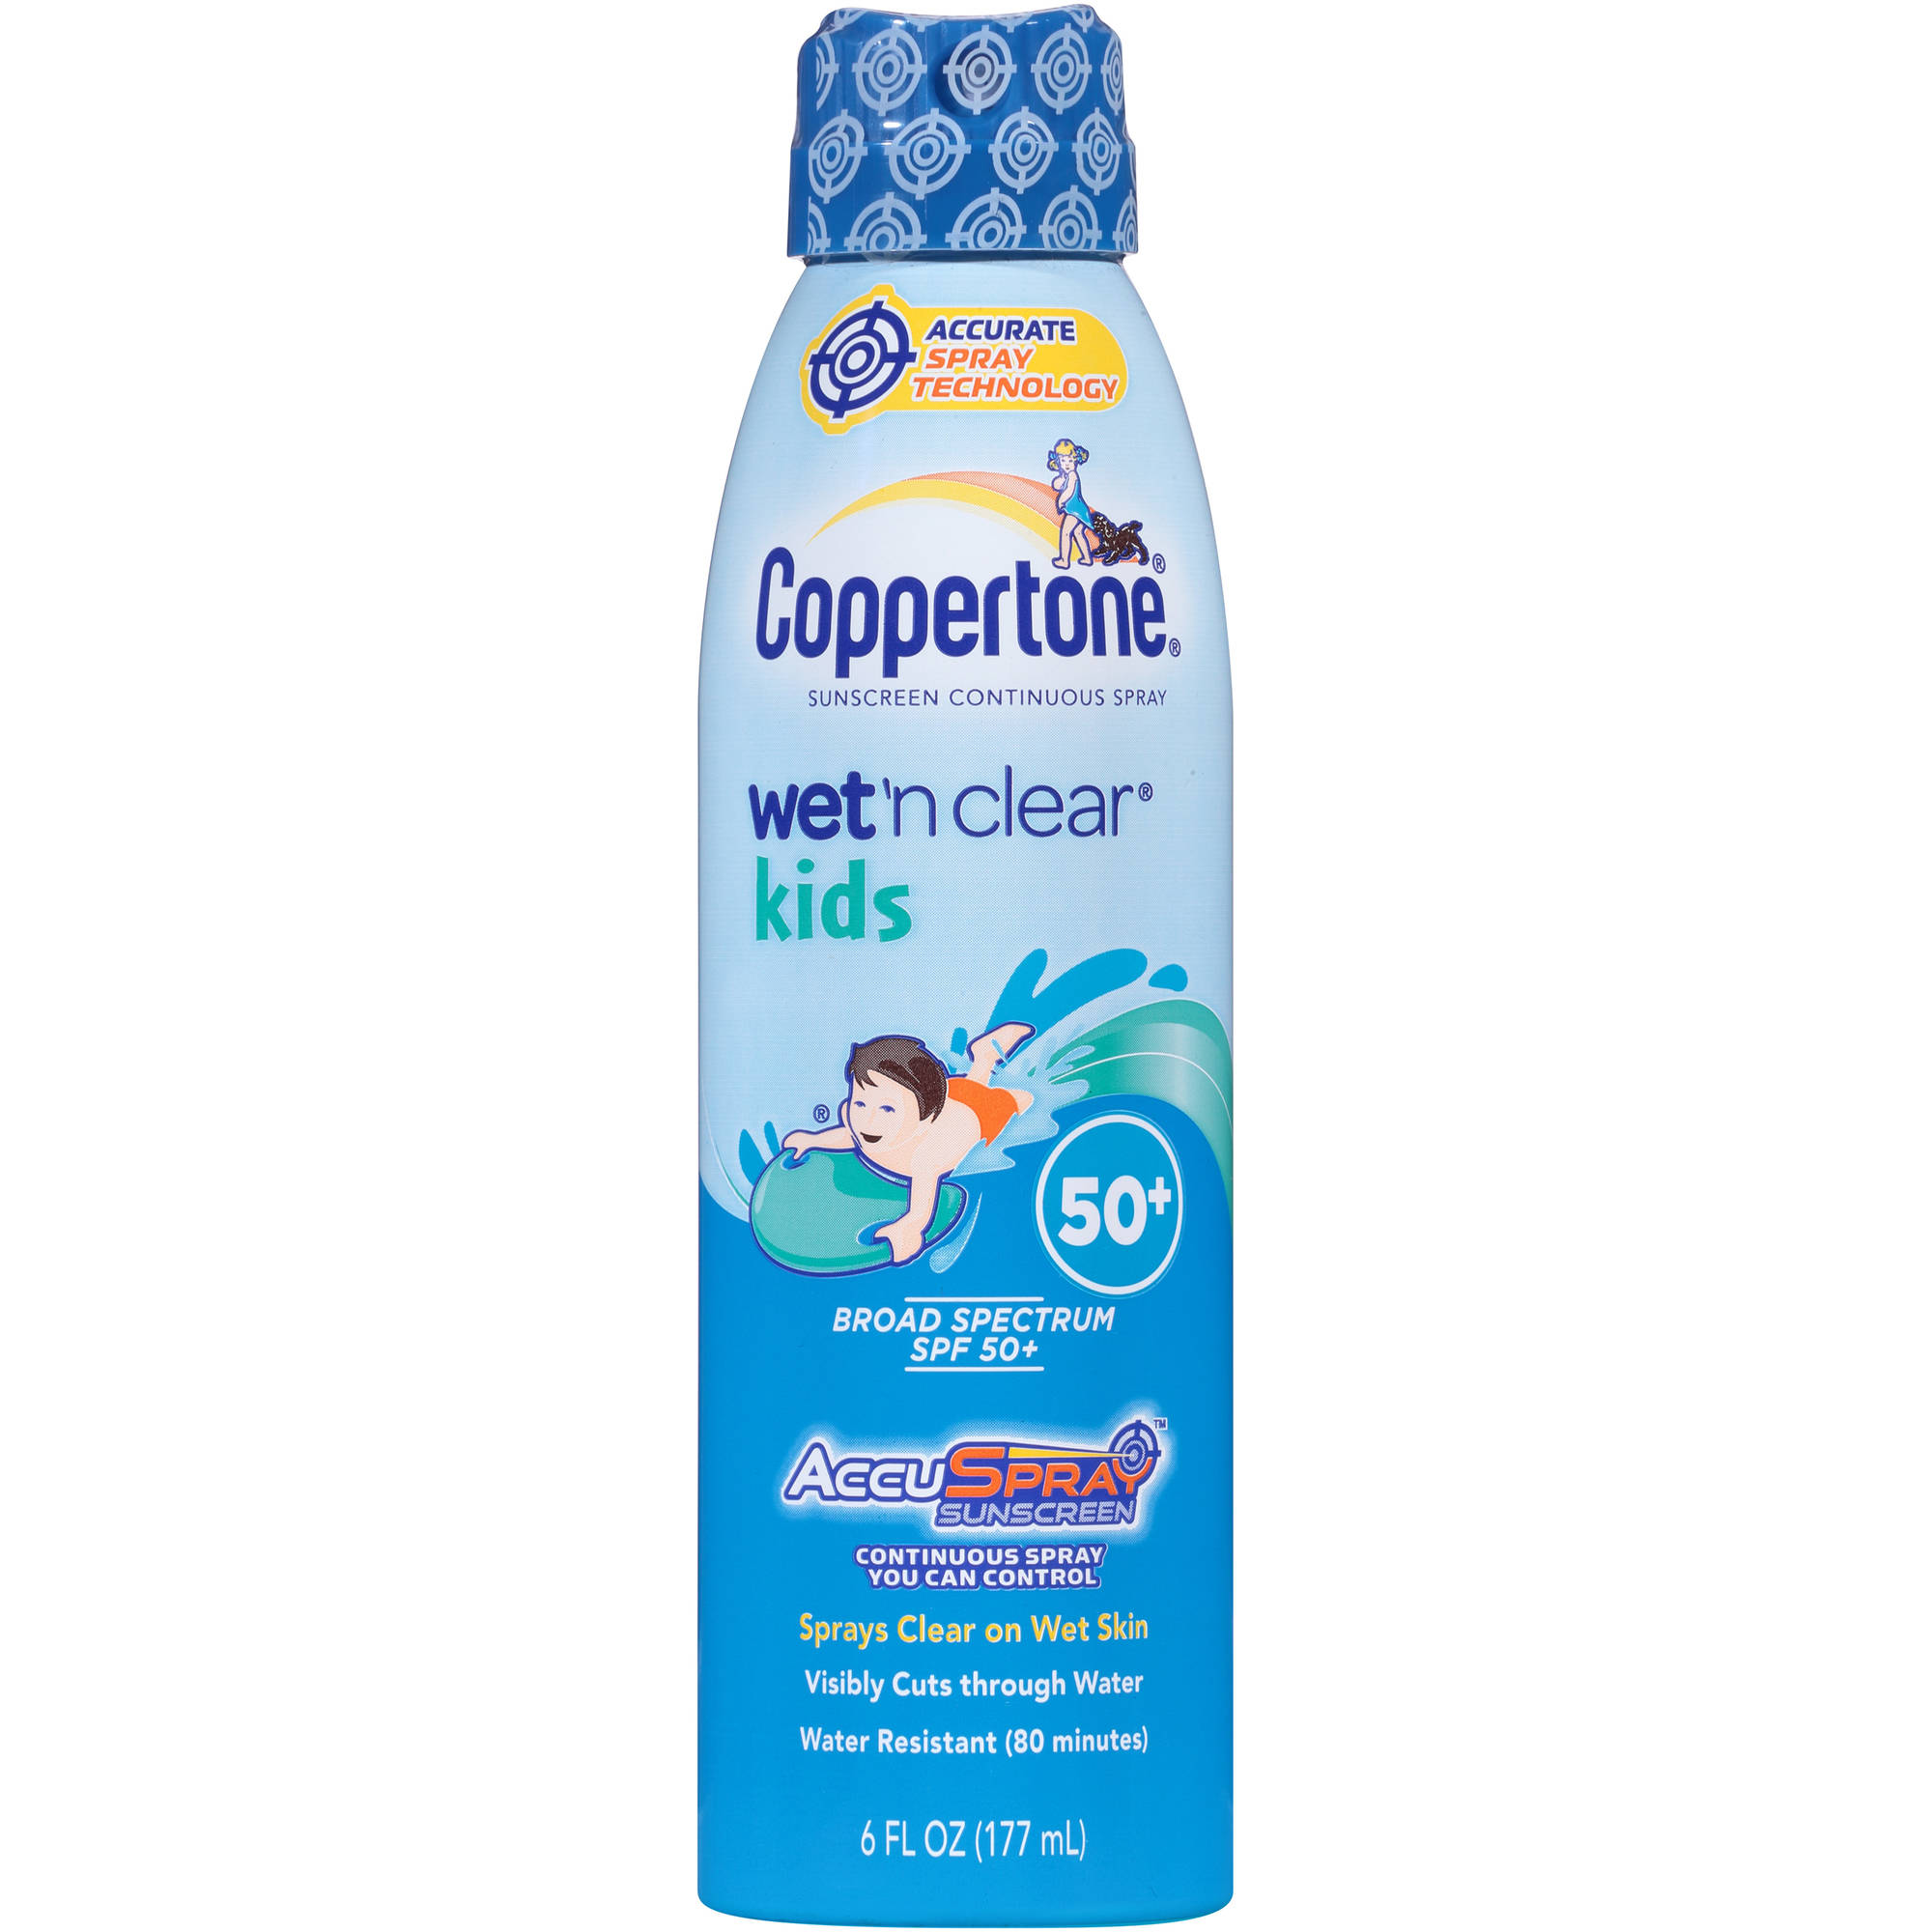 Coppertone Wet 'n Clear Kids Continuous Spray Sunscreen, SPF 50+, 6 fl oz